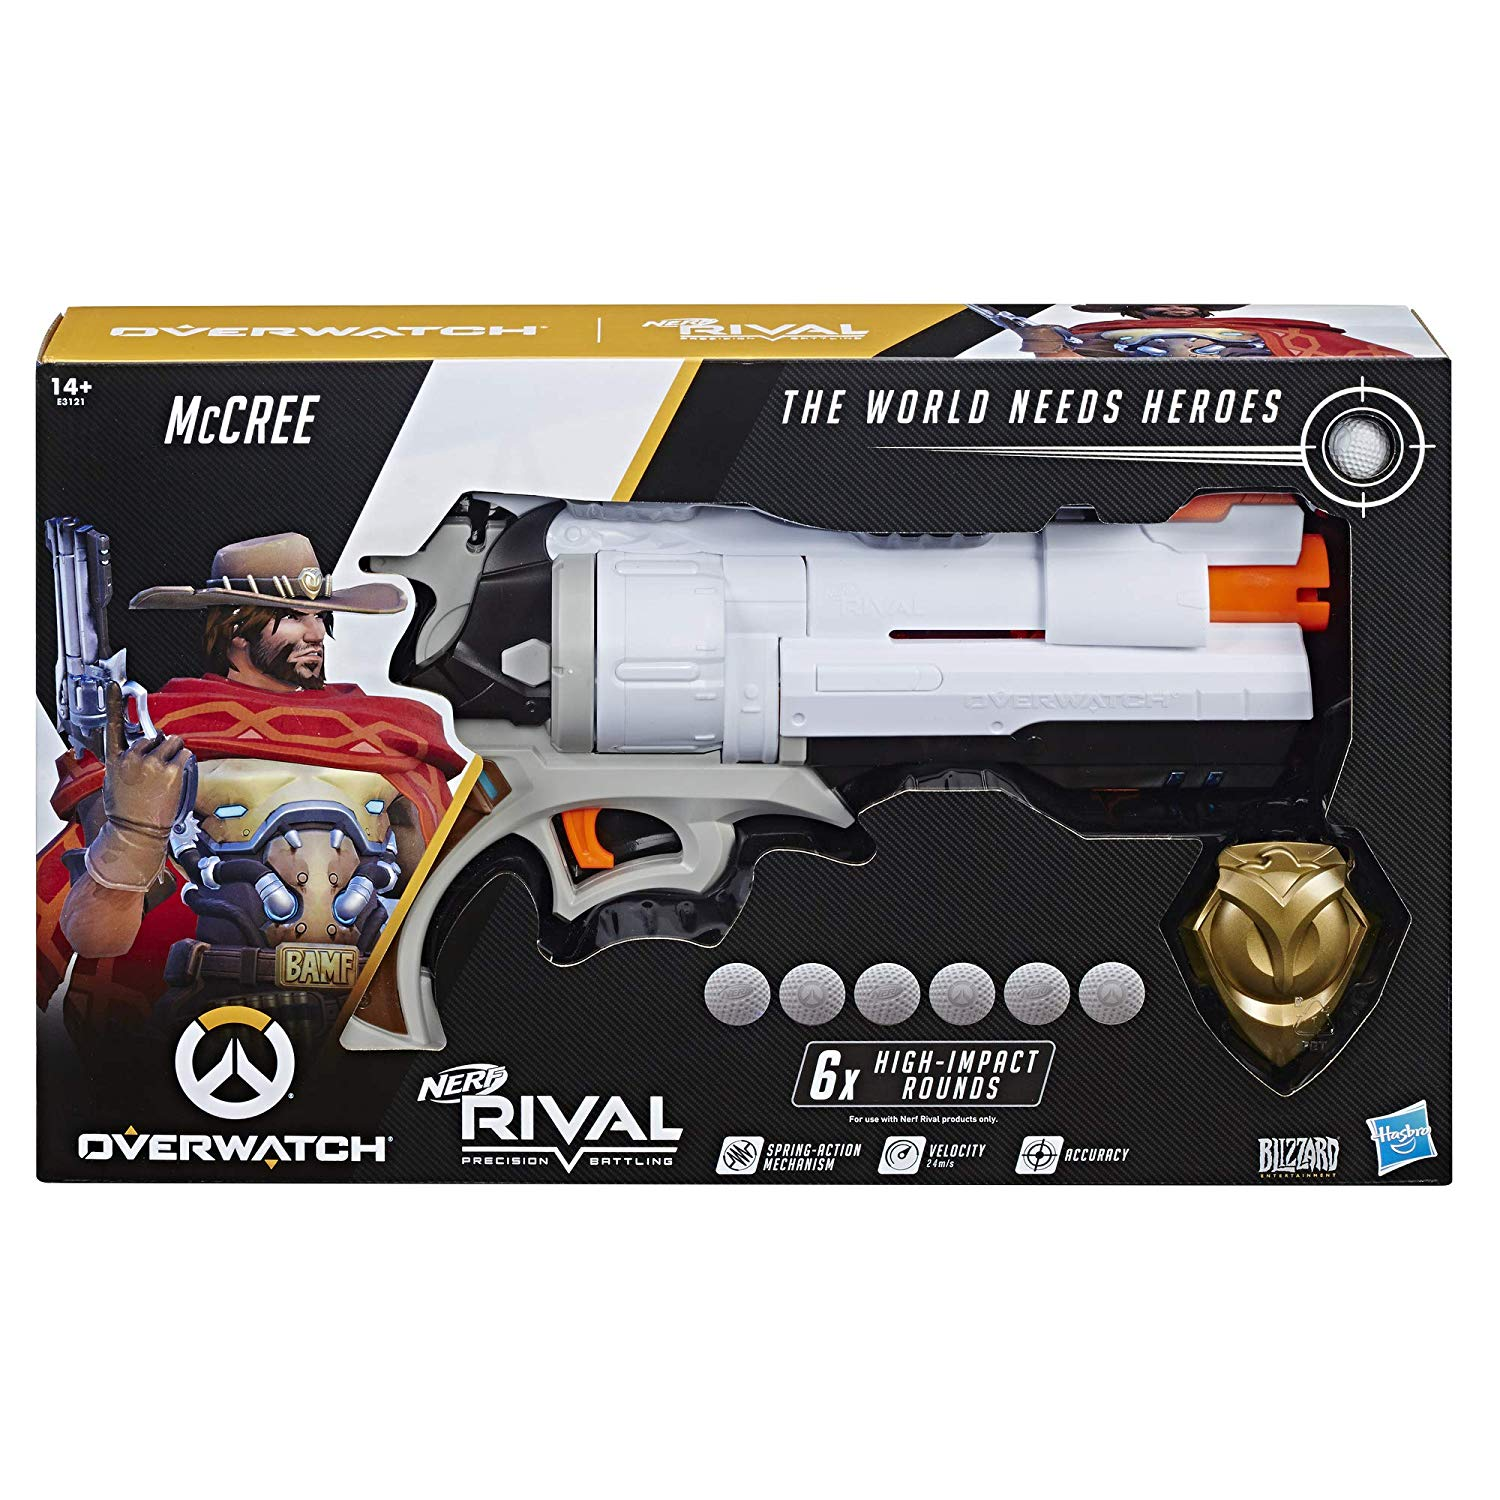 Nerf Overwatch McCree Nerf Rival Blaster